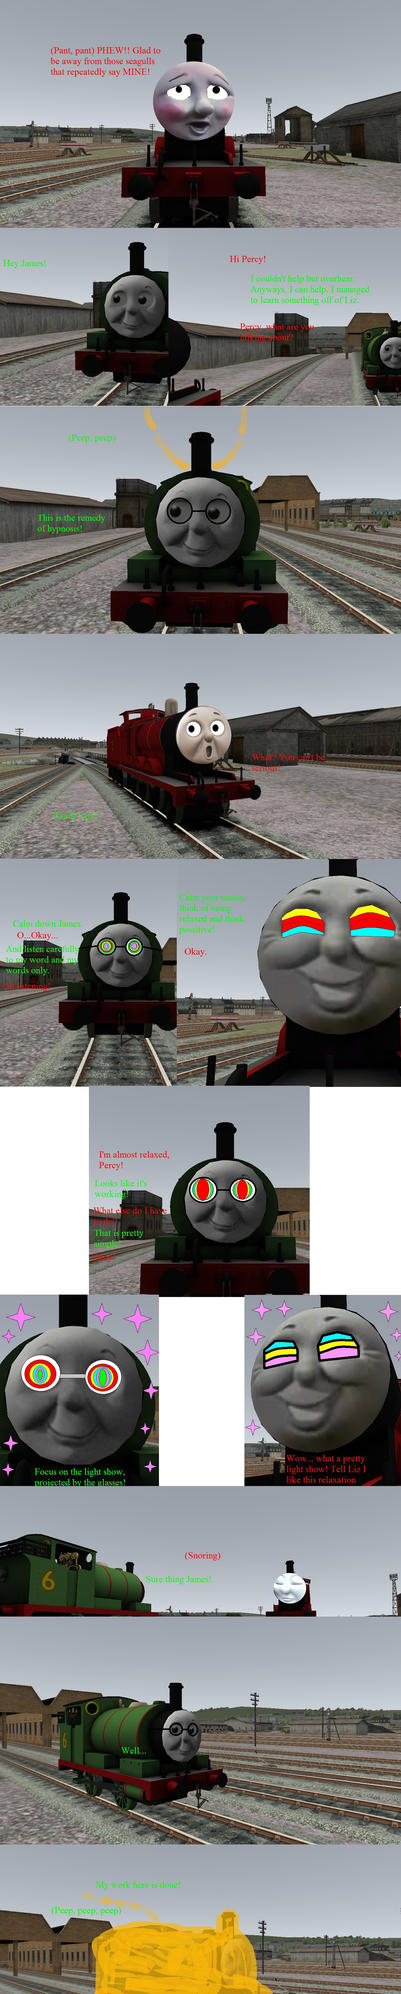 Percy's hypnosis on James. by Levelup331